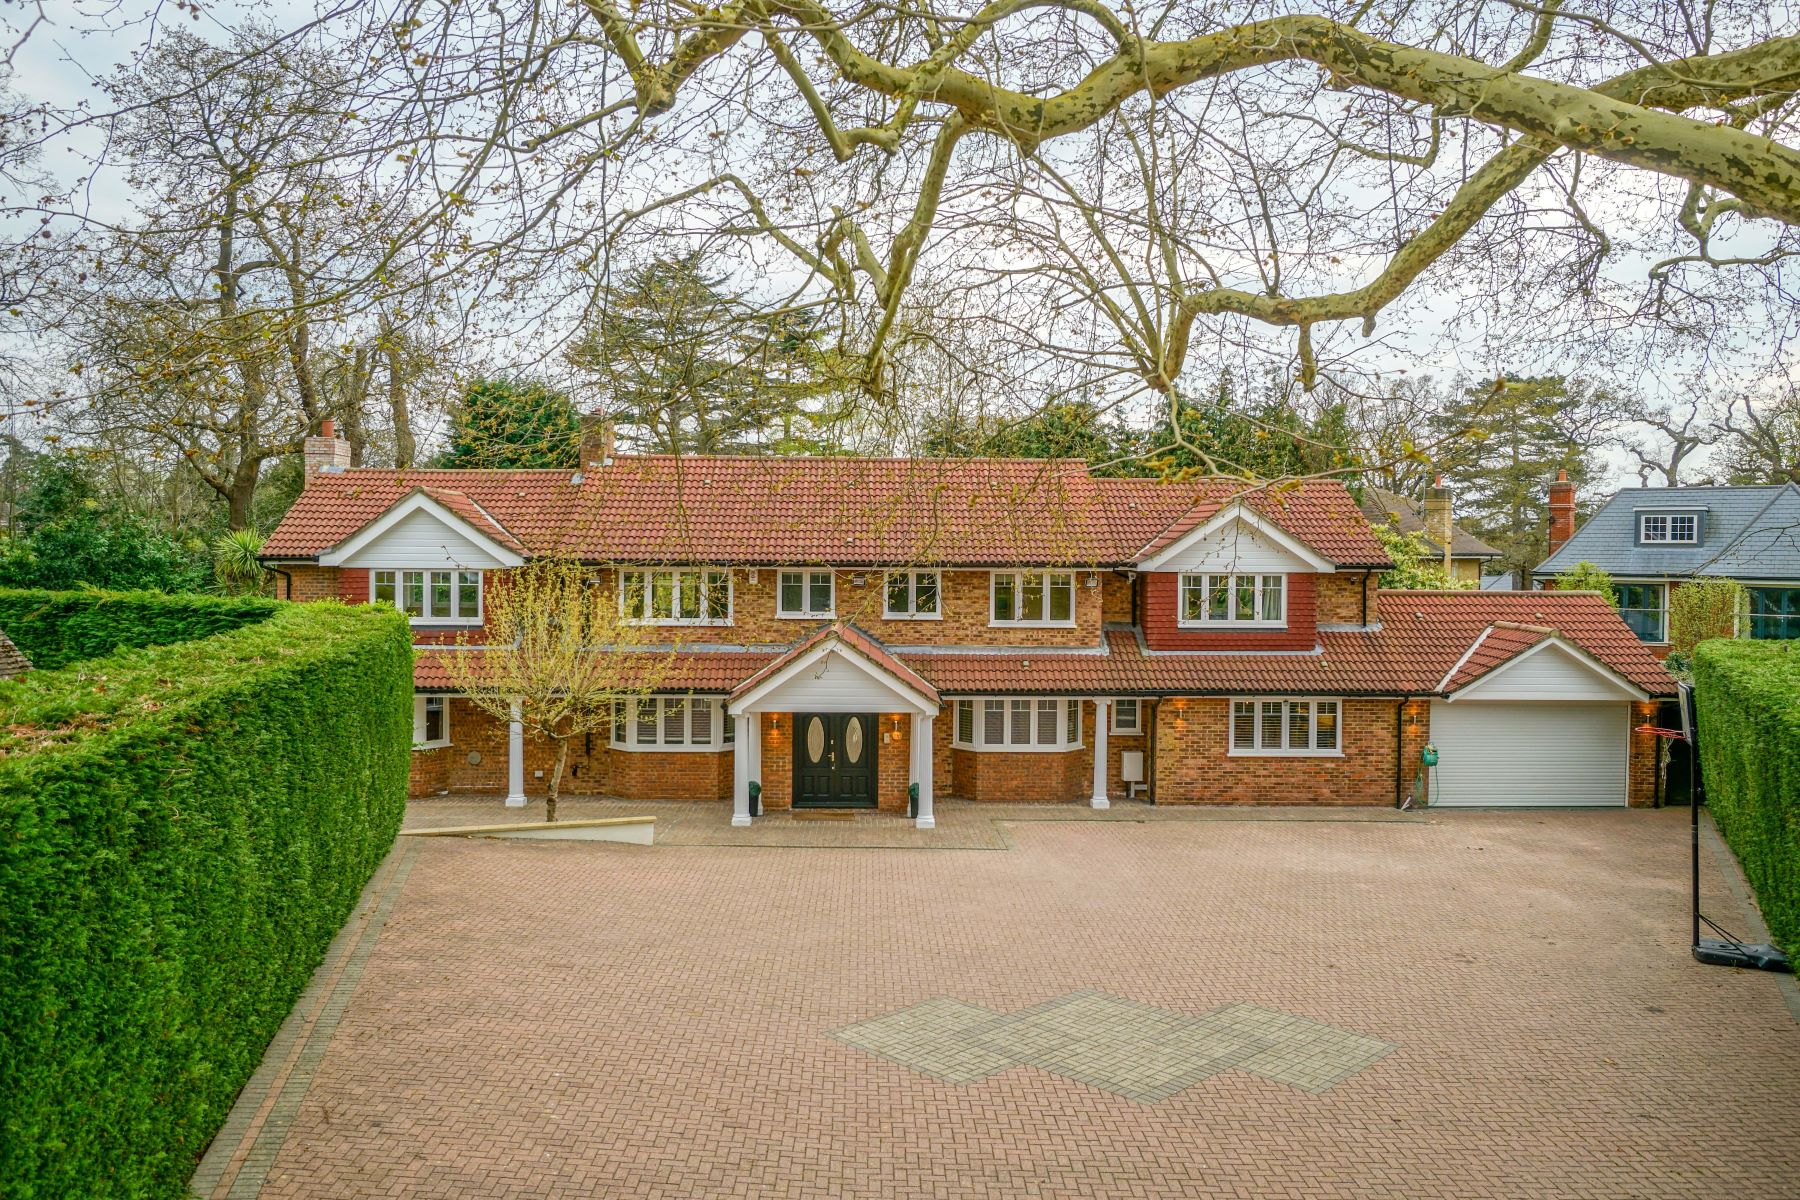 Single Family Homes for Sale at 4 Ashcroft Park Cobham, England KT11 2DN United Kingdom